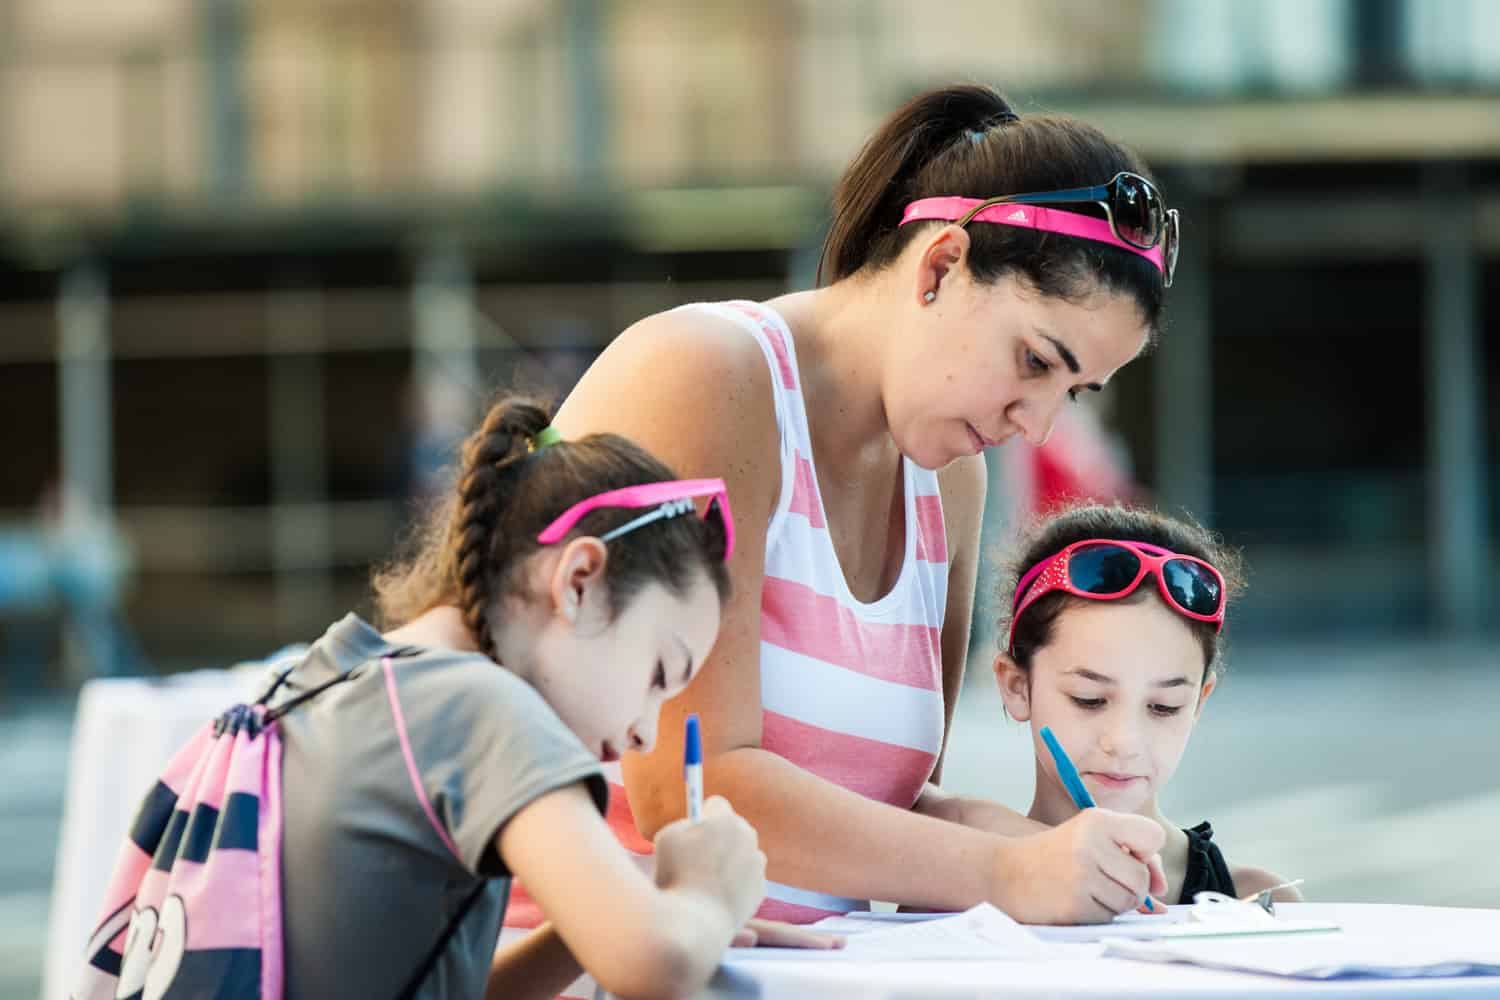 NYC Race for the Cure photos of woman and her two daughters filling out paperwork